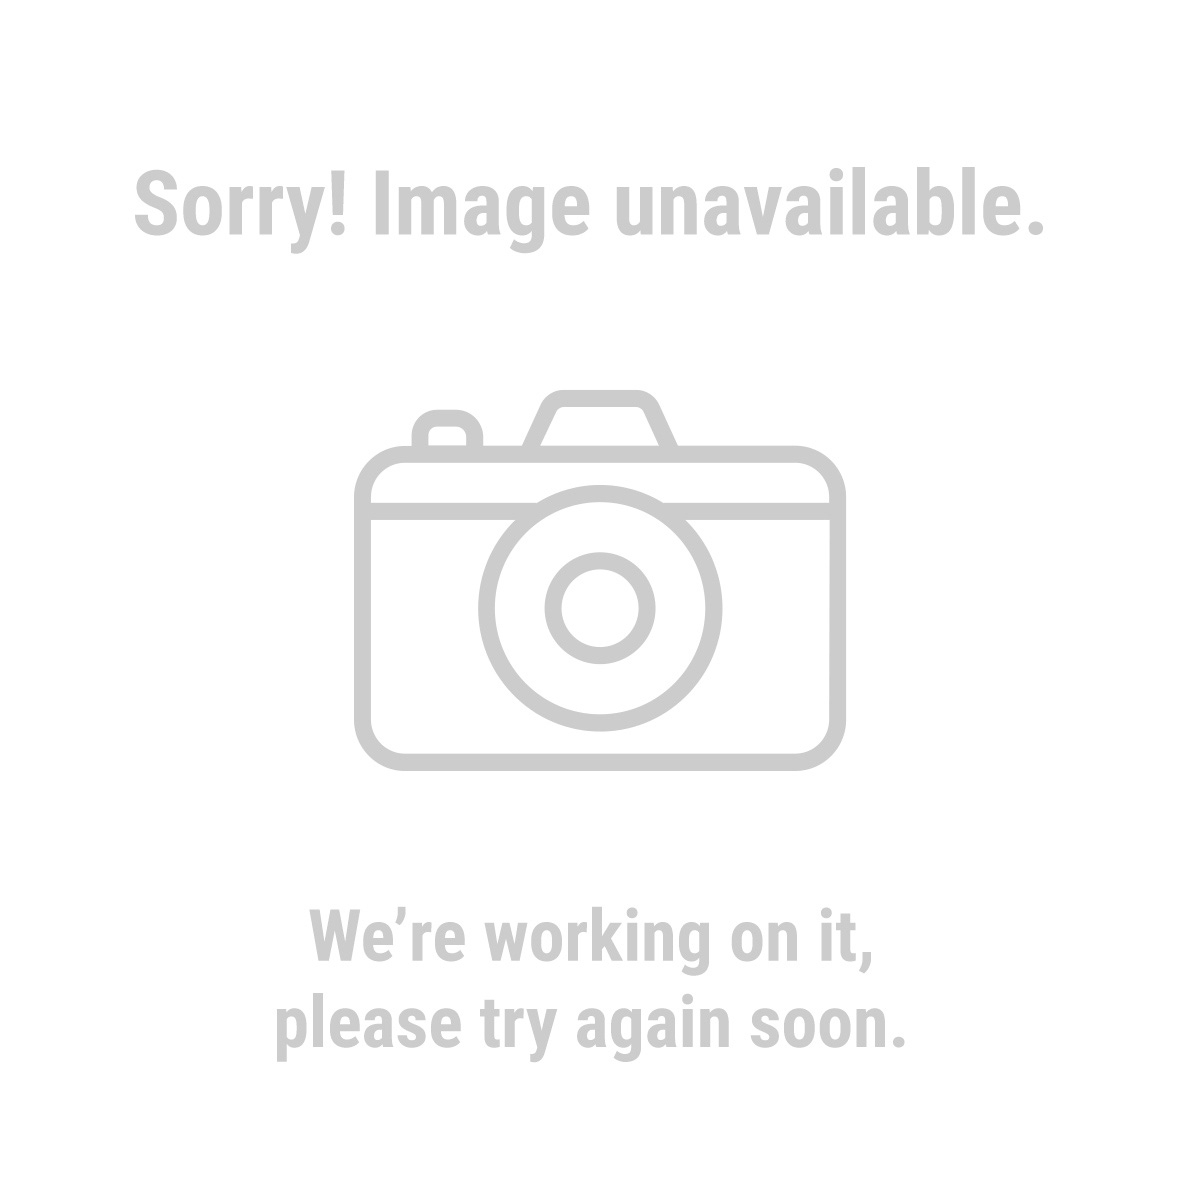 Pittsburgh® 67889 3/8 in. Drive SAE Long Reach Hex Bit Socket Set 7 Piece